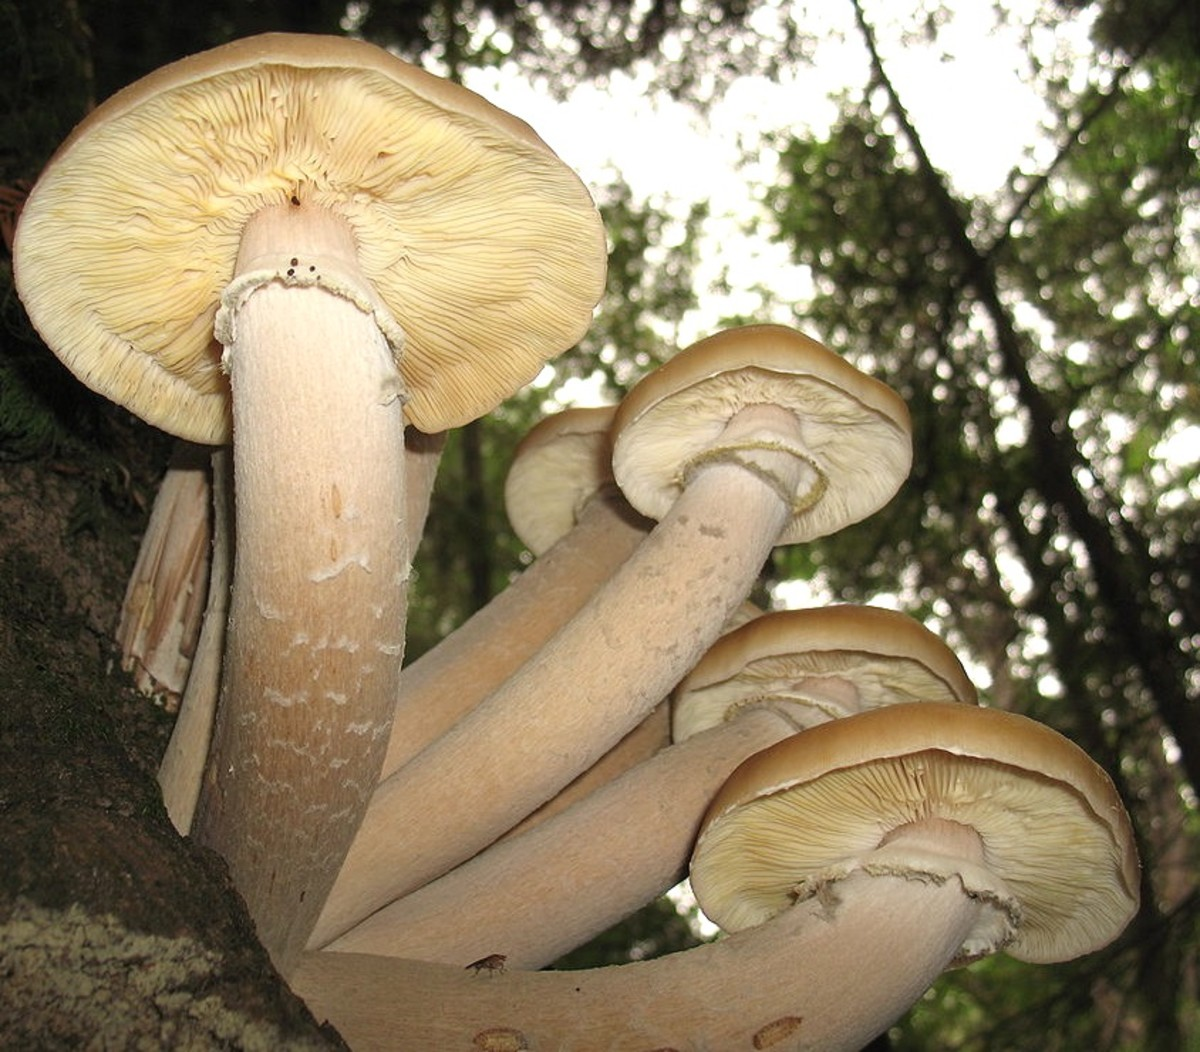 Humongous Fungus: The Largest Living Thing on Earth